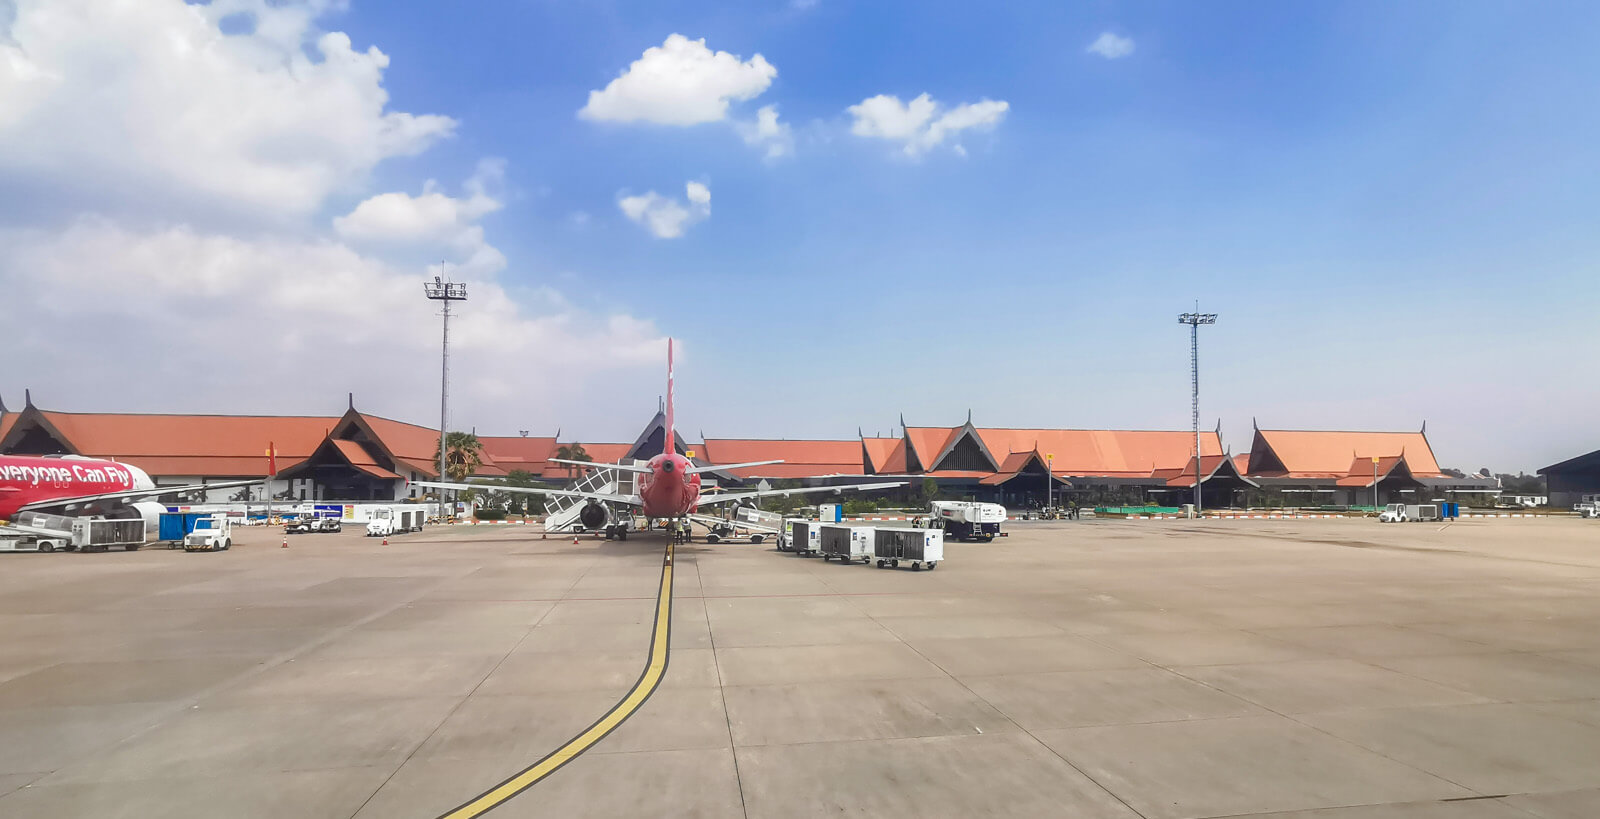 Siem Reap International Airport: What You Need to Know